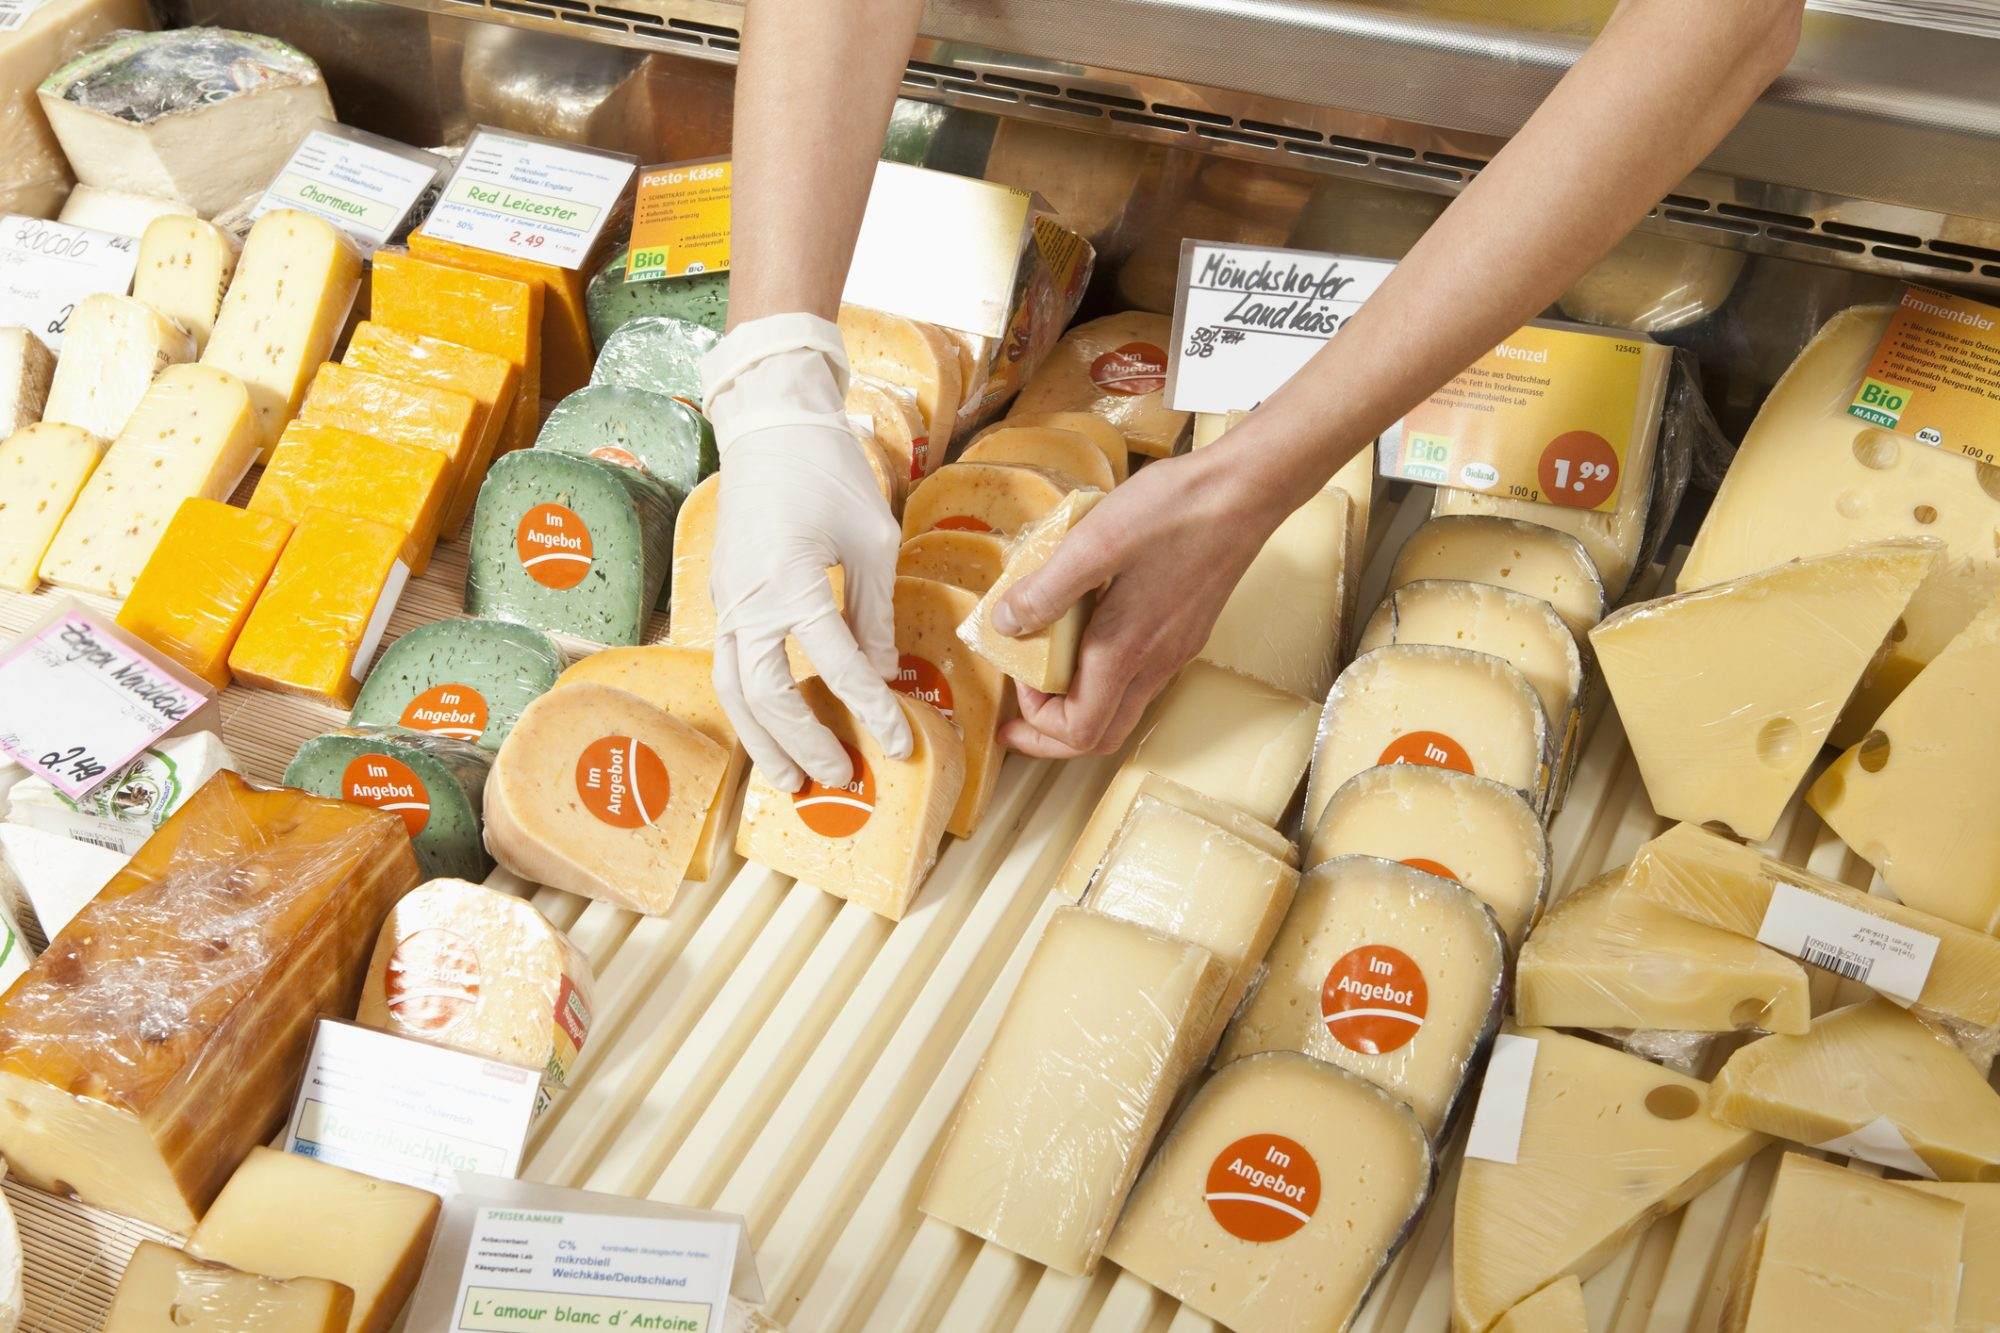 A sale clerk in a cheese shop, focus on hands